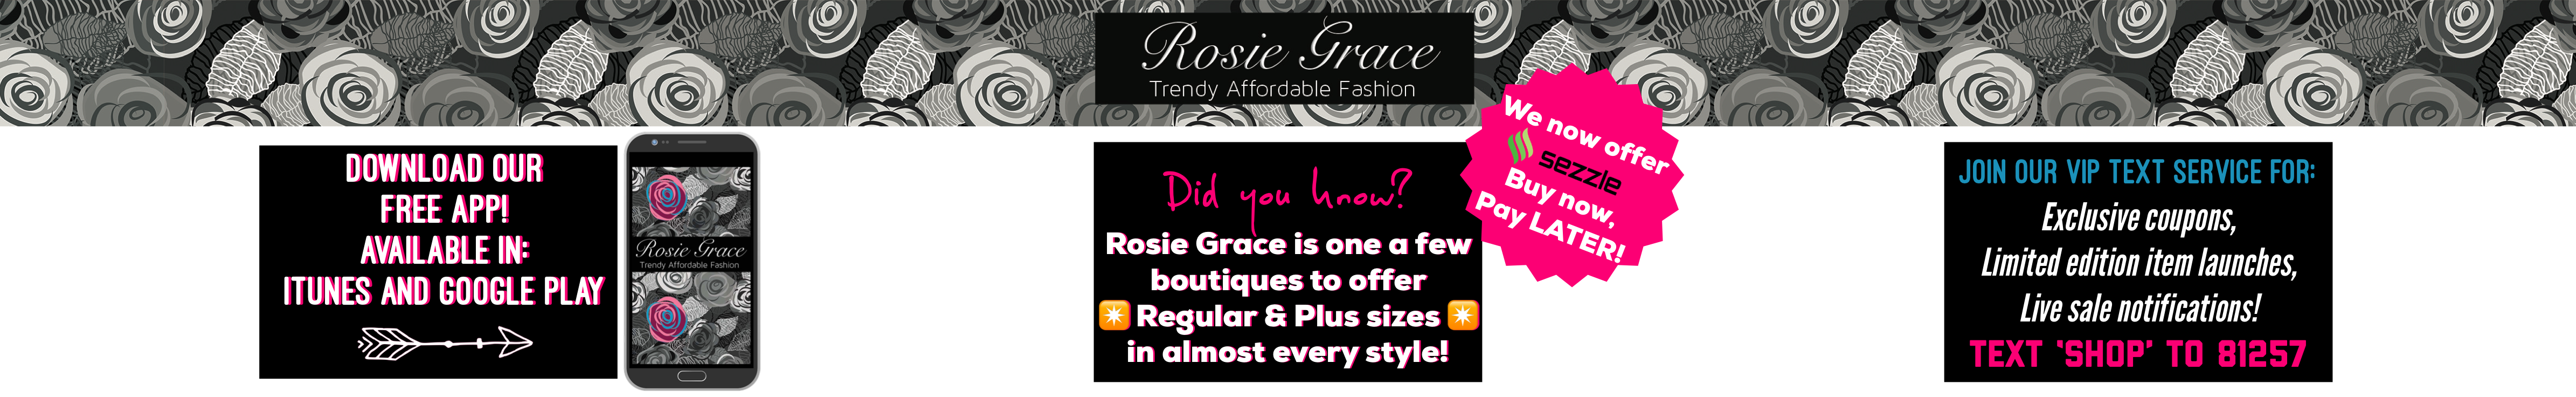 Welcome to Rosie Grace Boutique - Check Out What's New